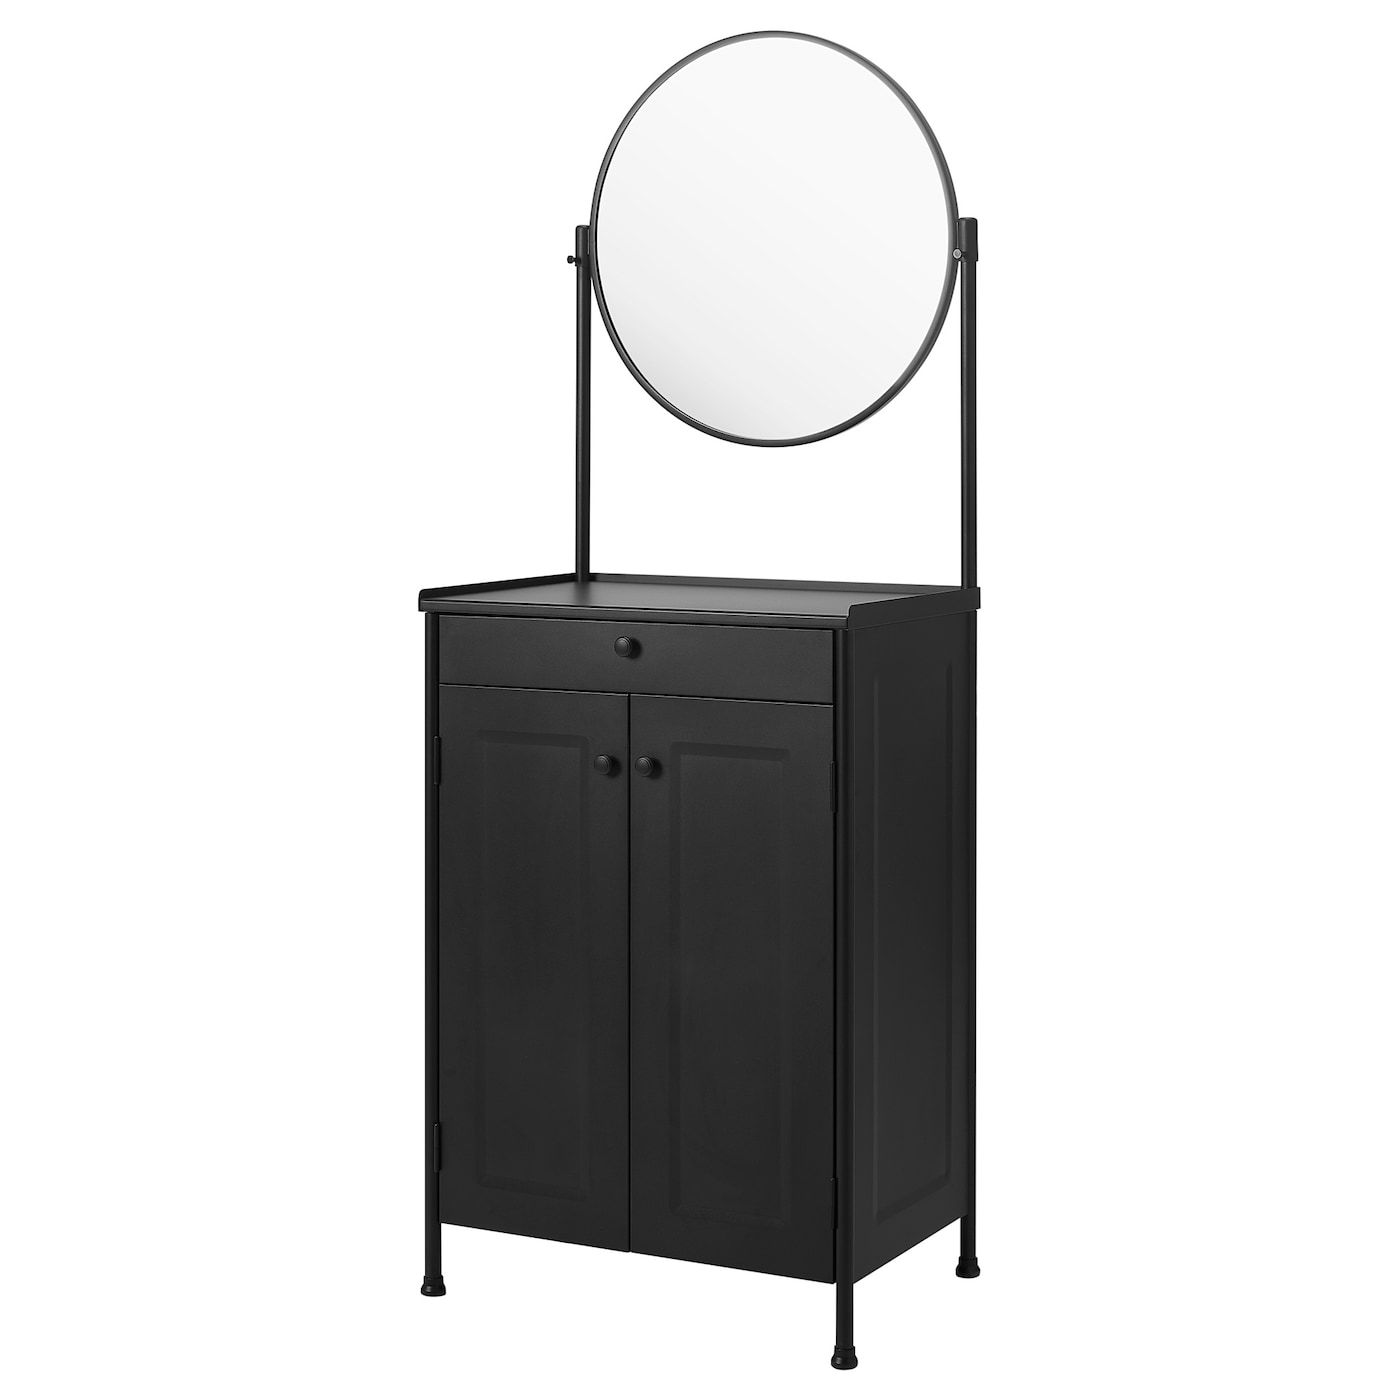 Beautiful Black Vanity Makeup Room Has Ikea Alex Drawers And Linnmon Table Top Room Decor Room Inspiration Vanity Makeup Rooms